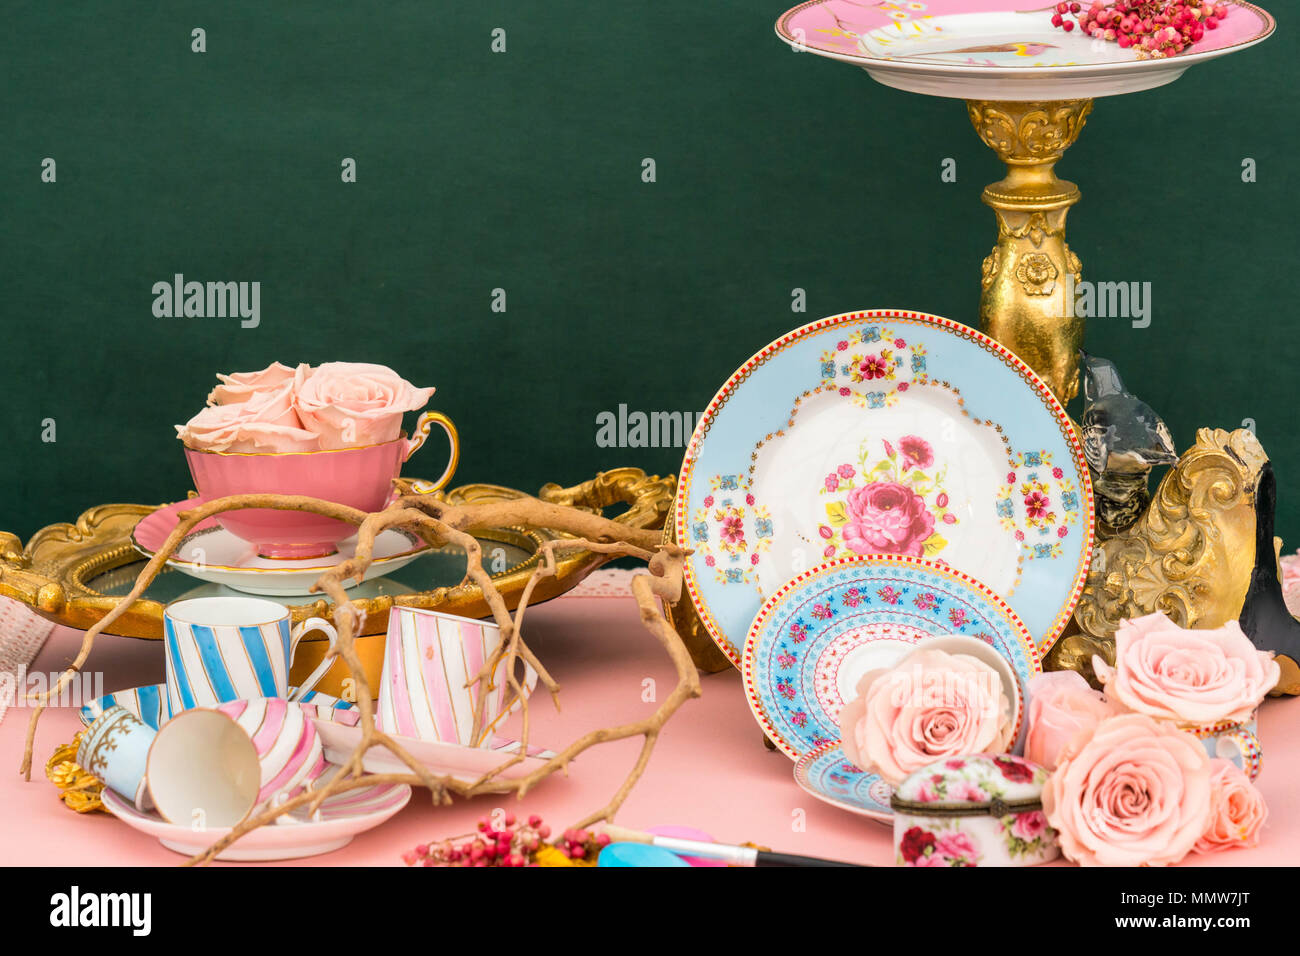 Creative display with china tea service and roses. Malvern Spring Festival Worcestershire UK. May 2018 Stock Photo